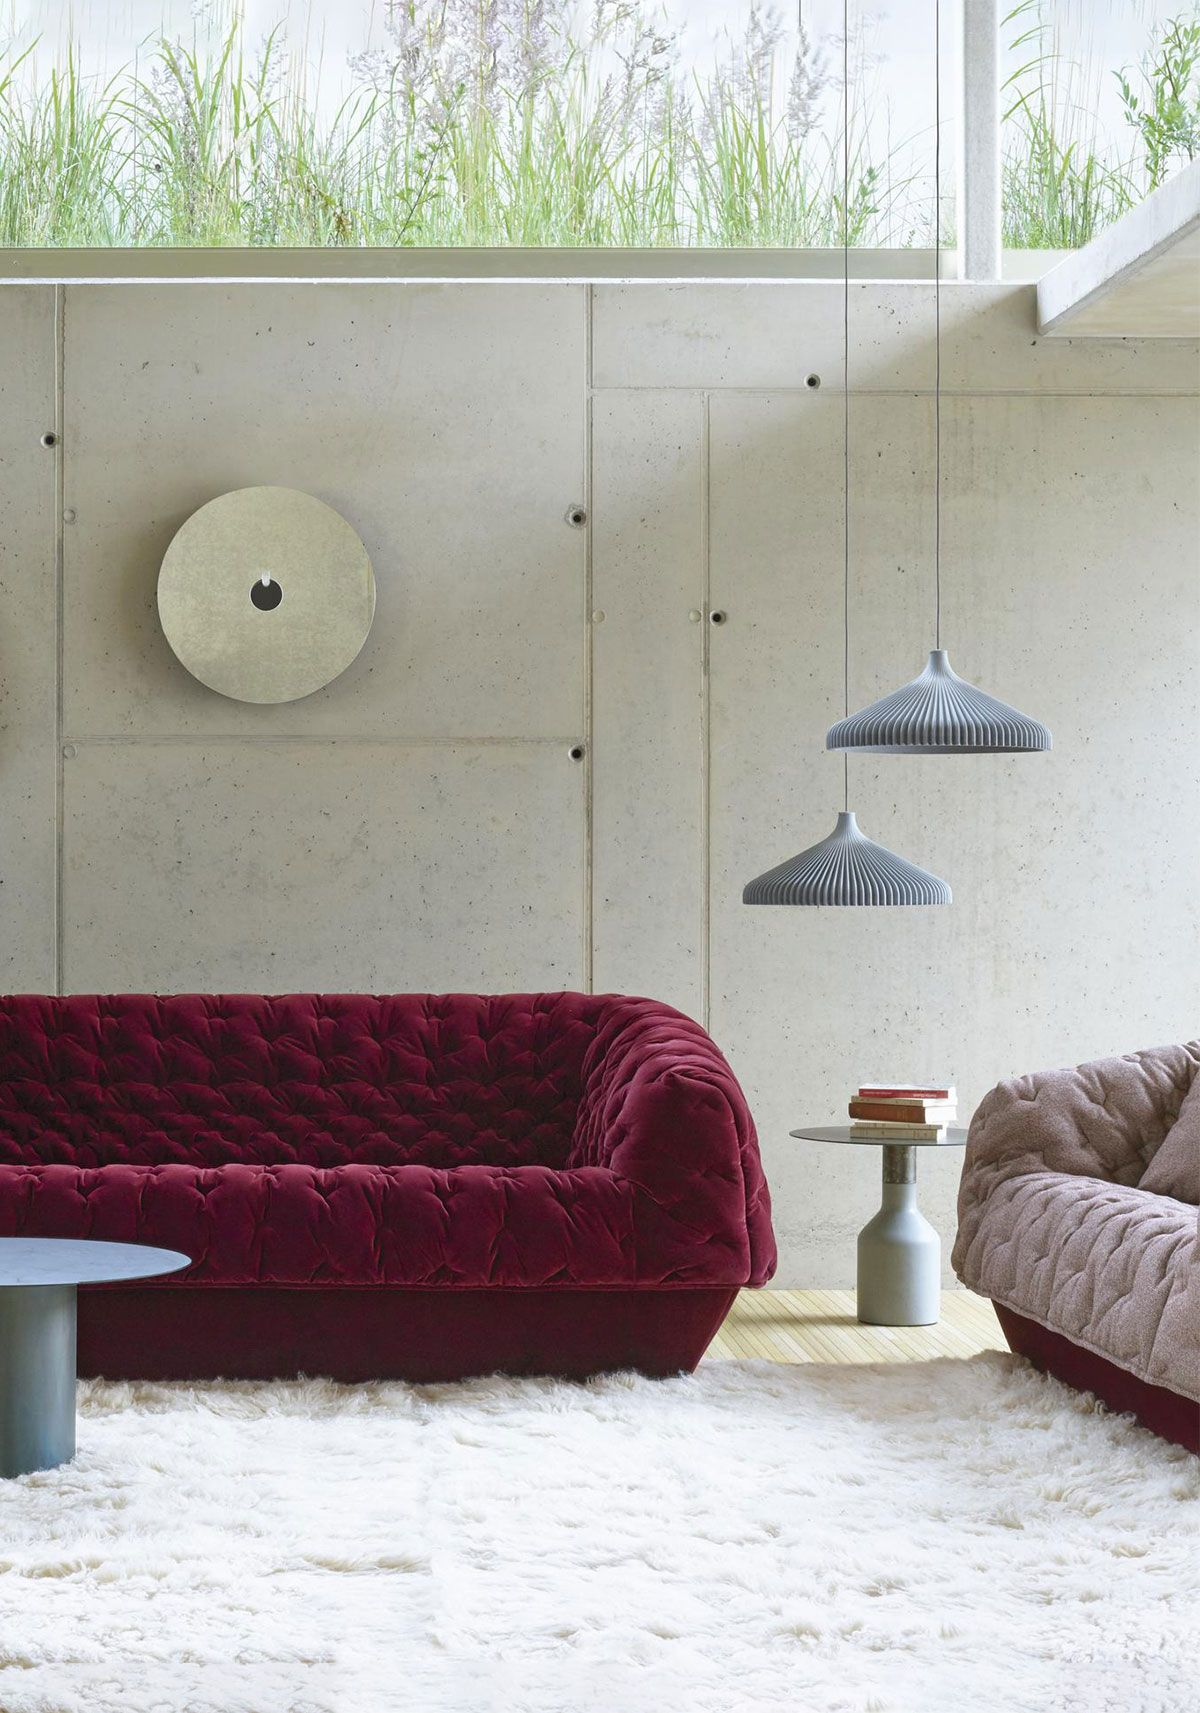 Cover 1 sofa collection designed by marie christine dorner for ligne roset available at linea inc modern furniture los angeles